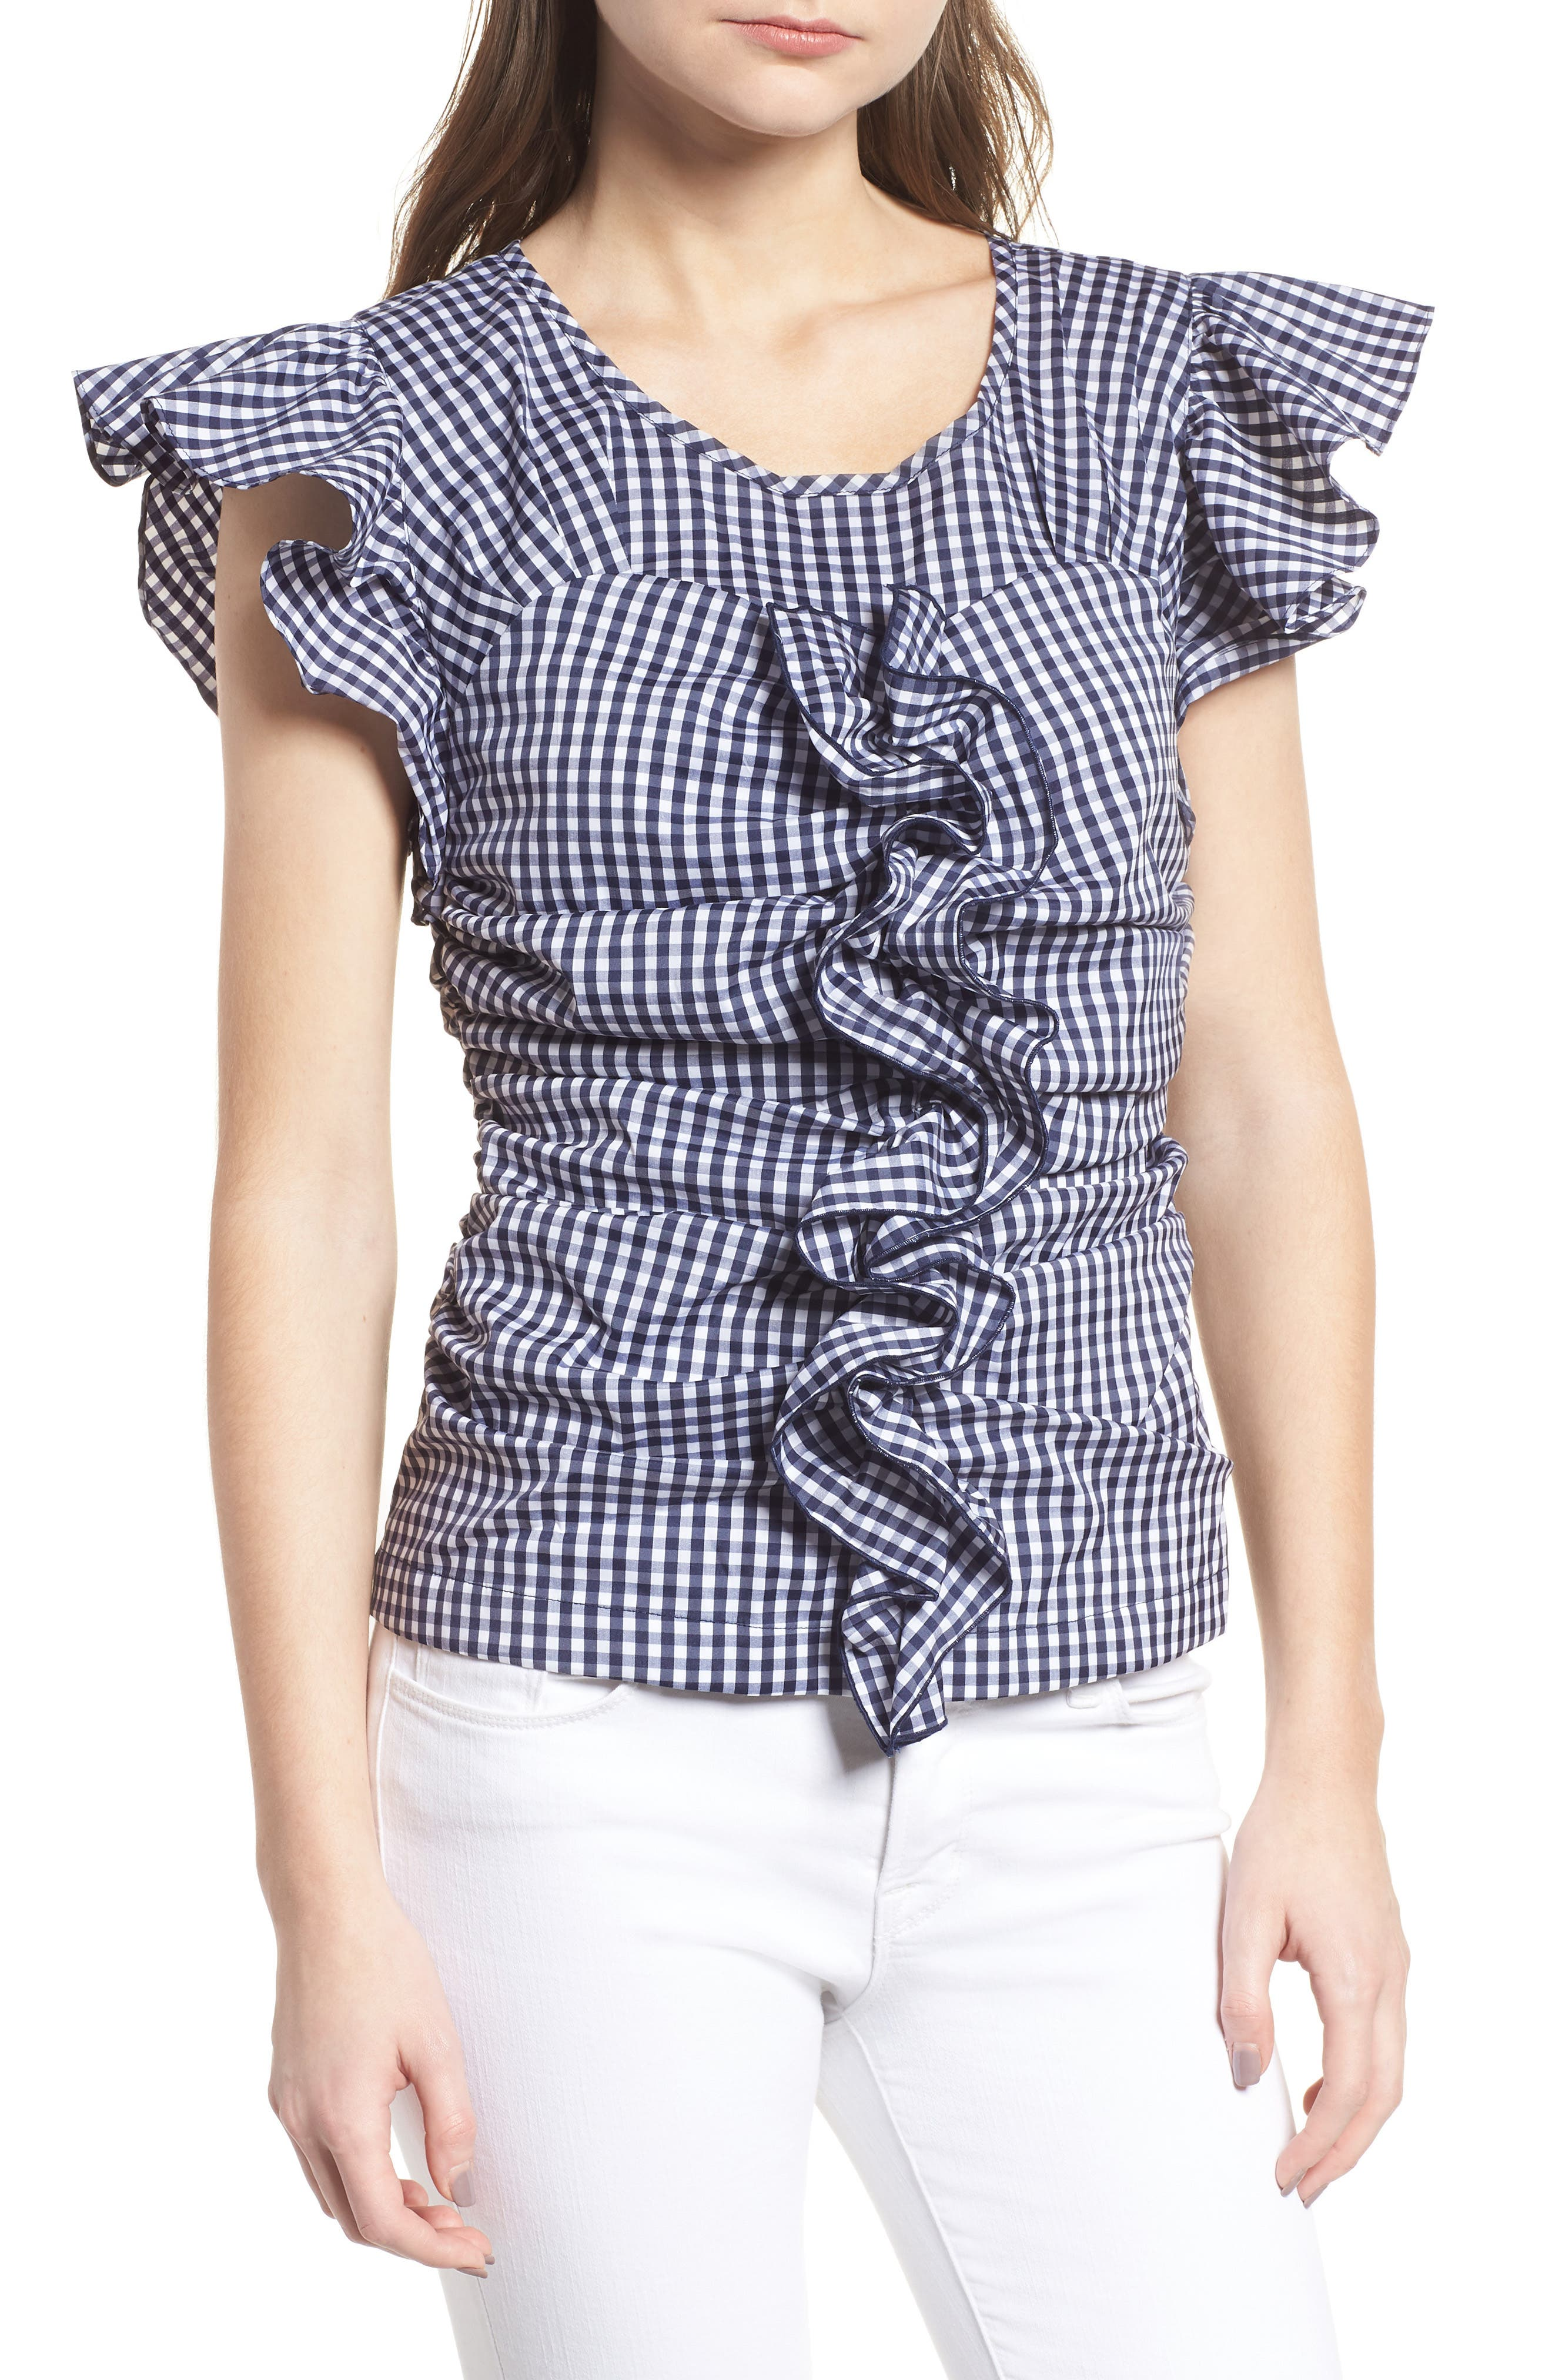 Main Image - Chelsea28 Gingham Ruched Poplin Top